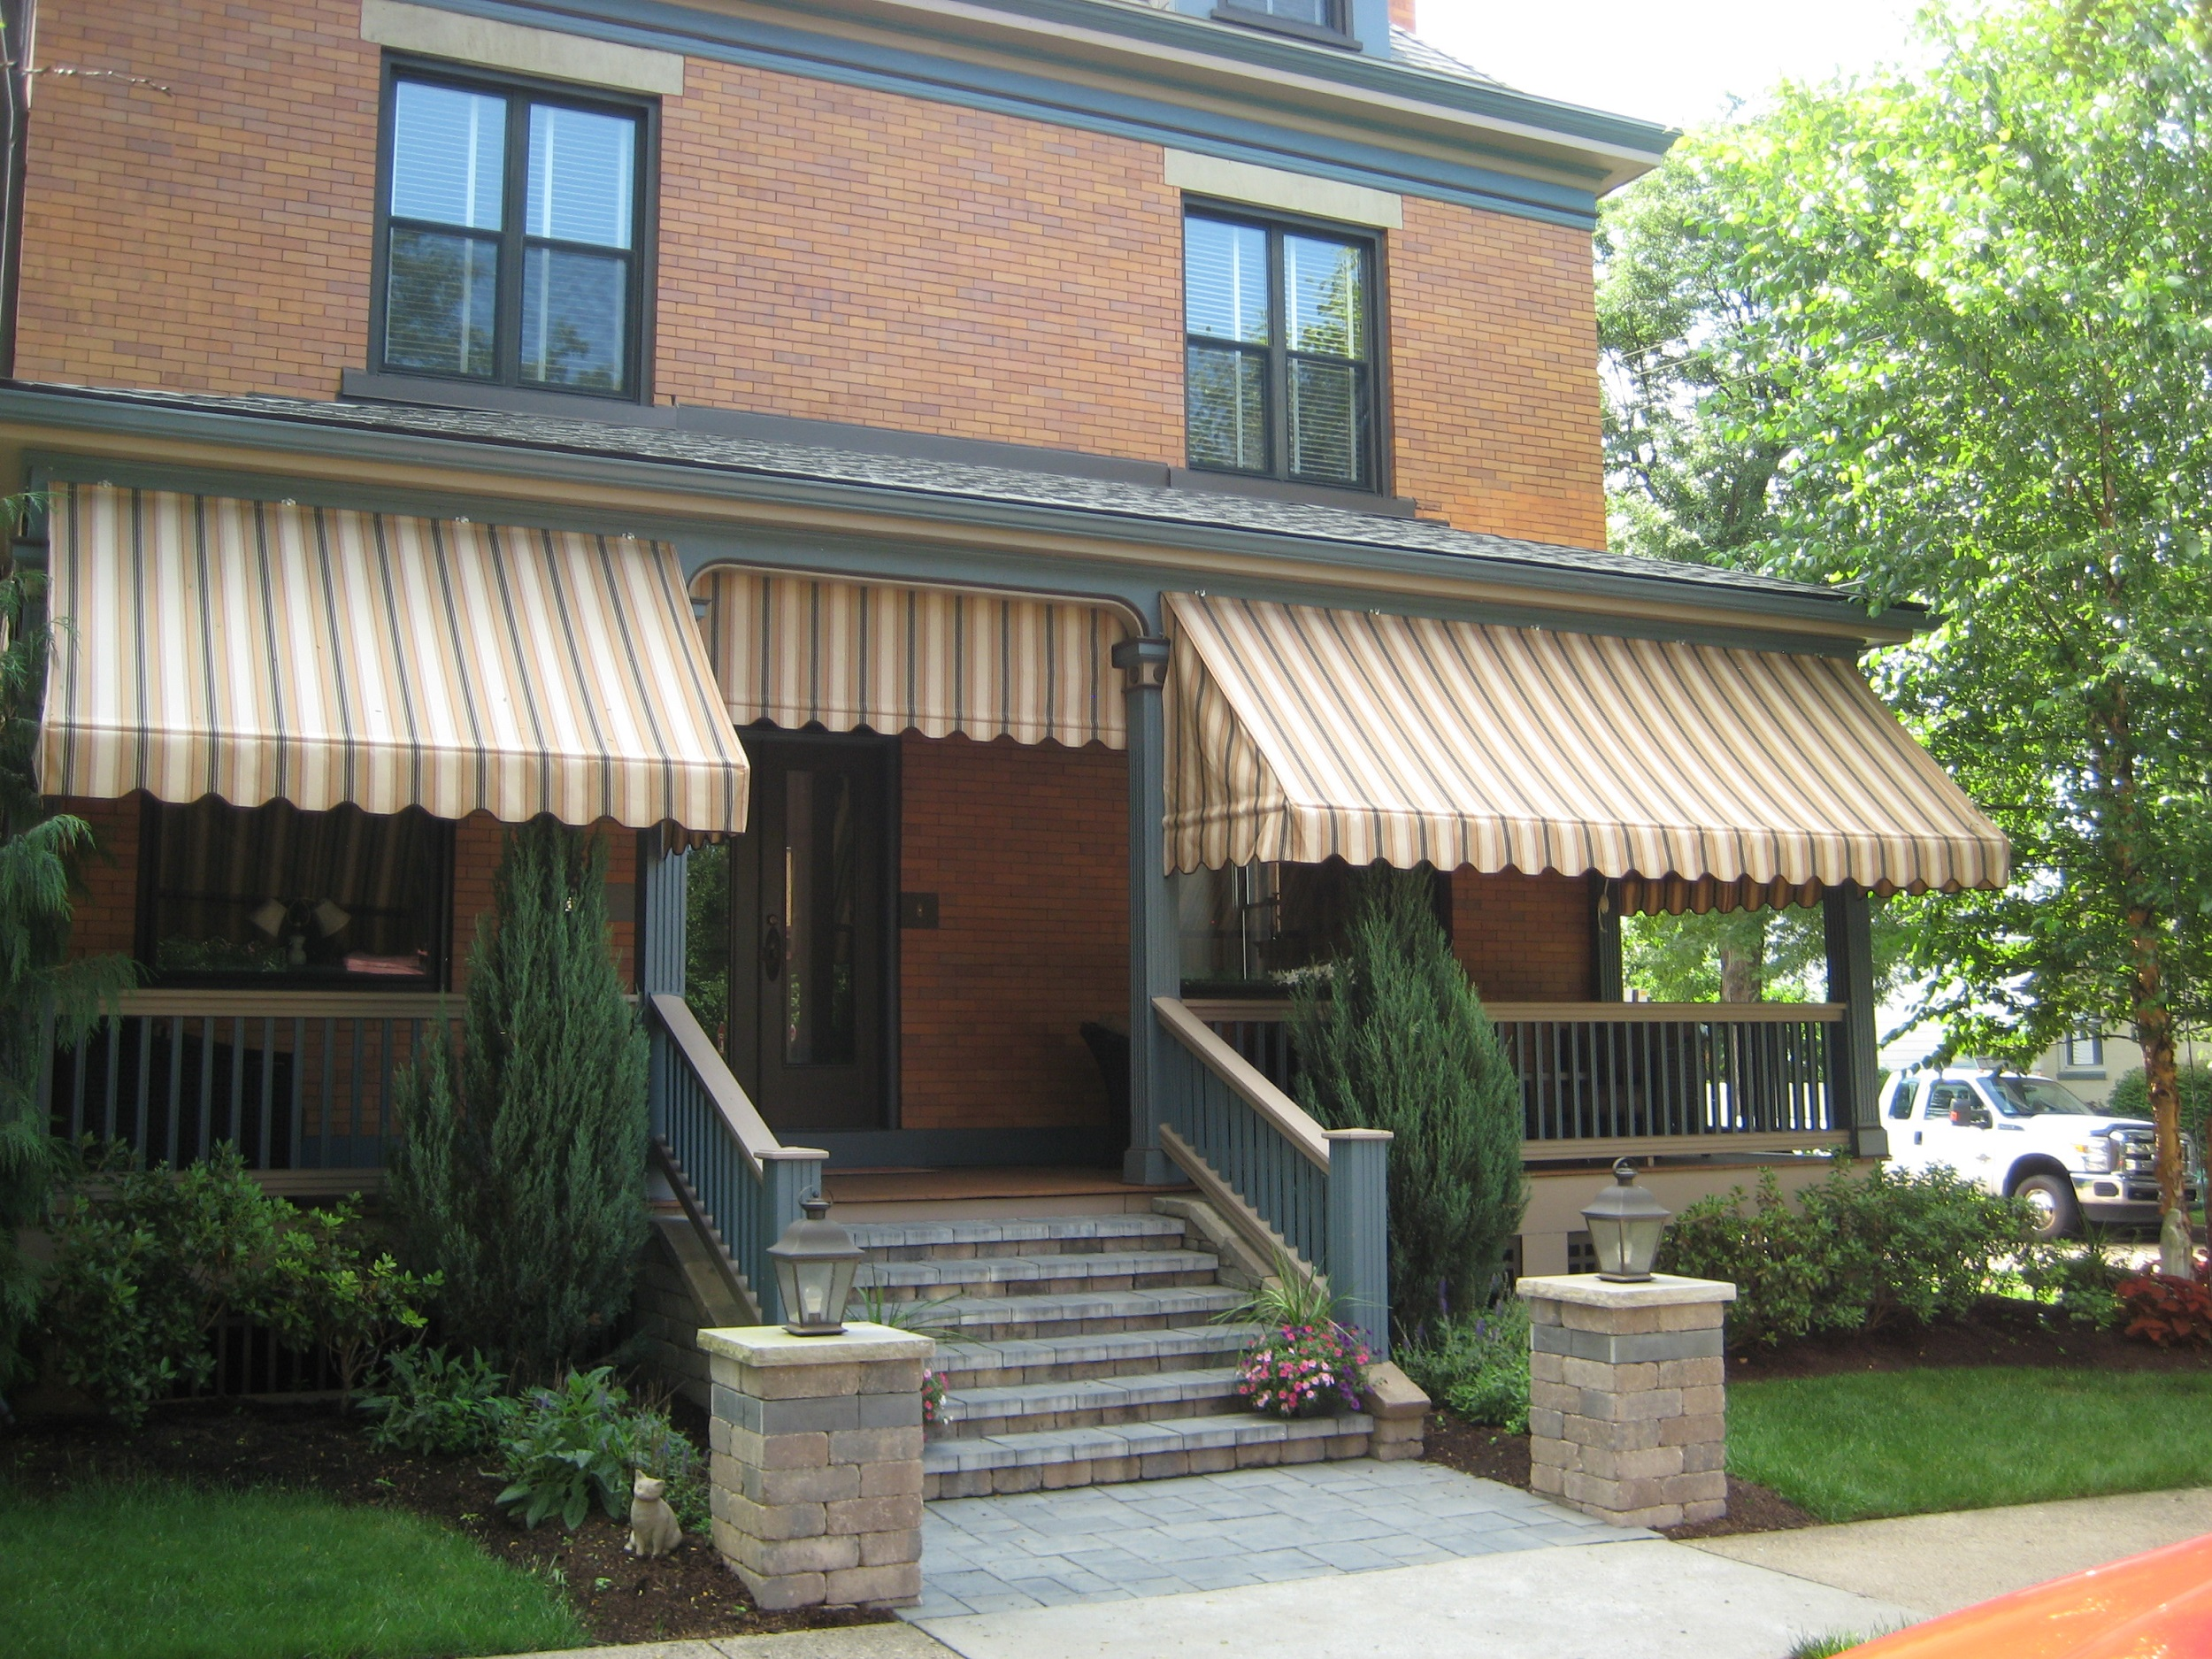 patio samples customers retractable tent awnings gallery residential have their awning through glance a edmonton see to take moment our homes coverings added products of window